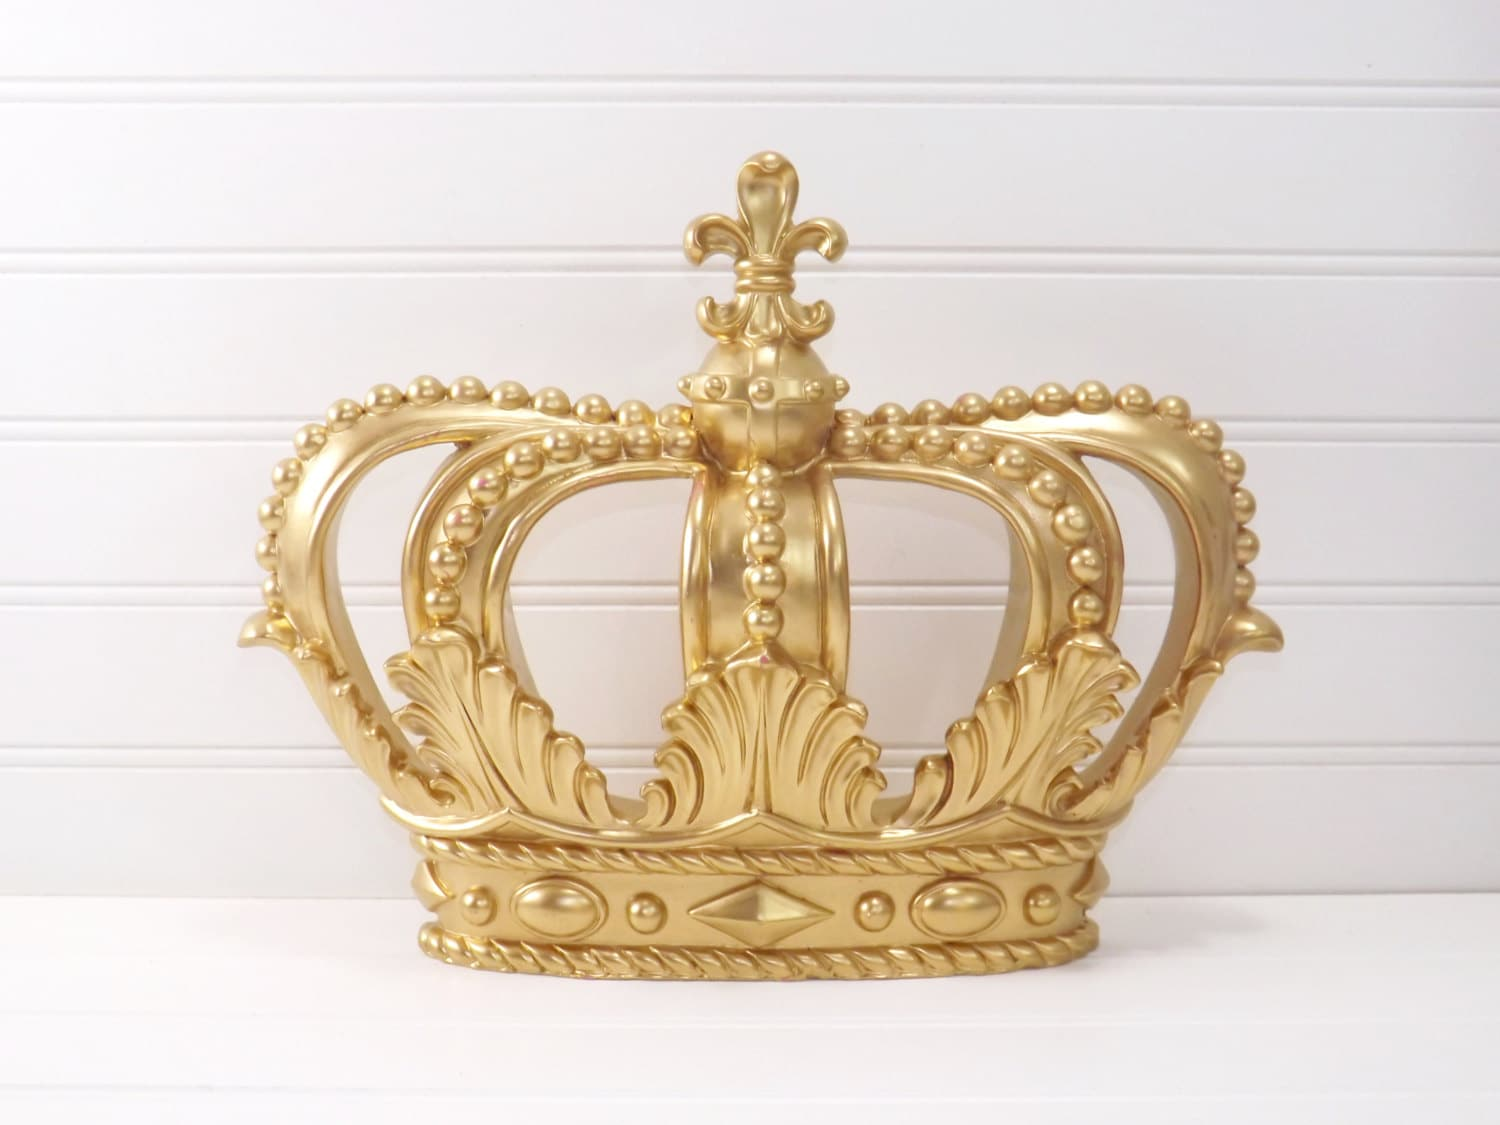 Minnie Mouse Bedroom Decorations Gold Princess Crown Gold Crown Crown Wall Decor Little